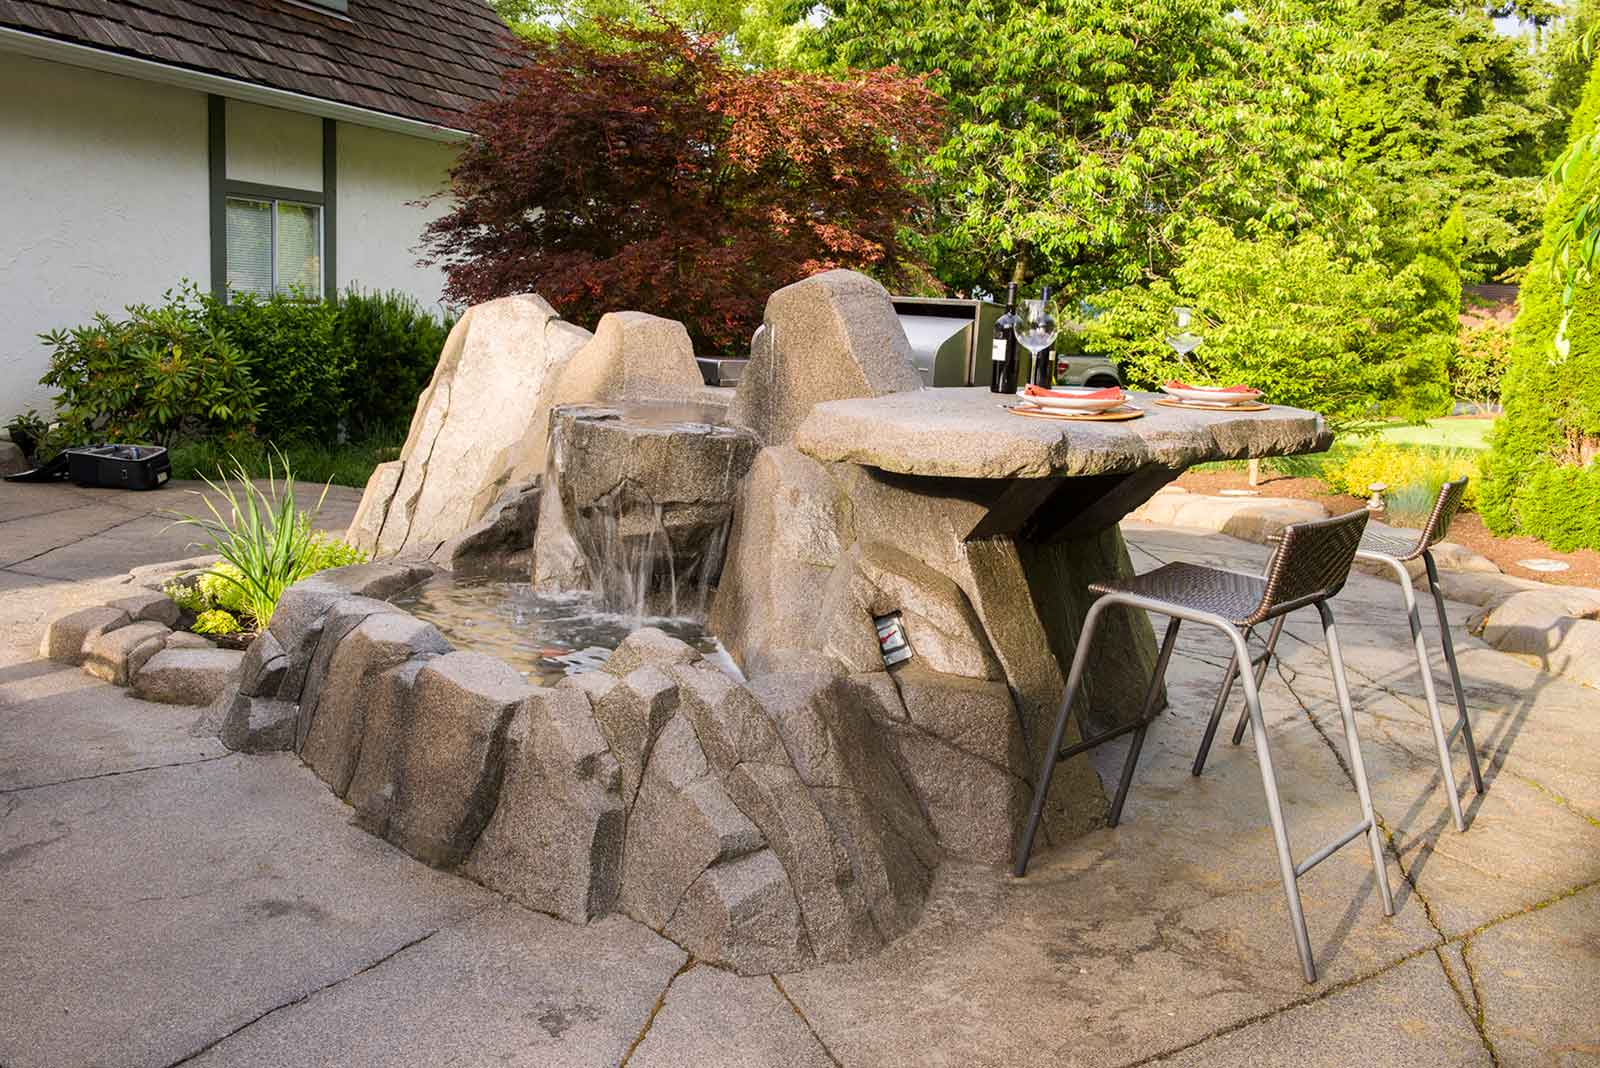 Concrete patio and artificial rock work